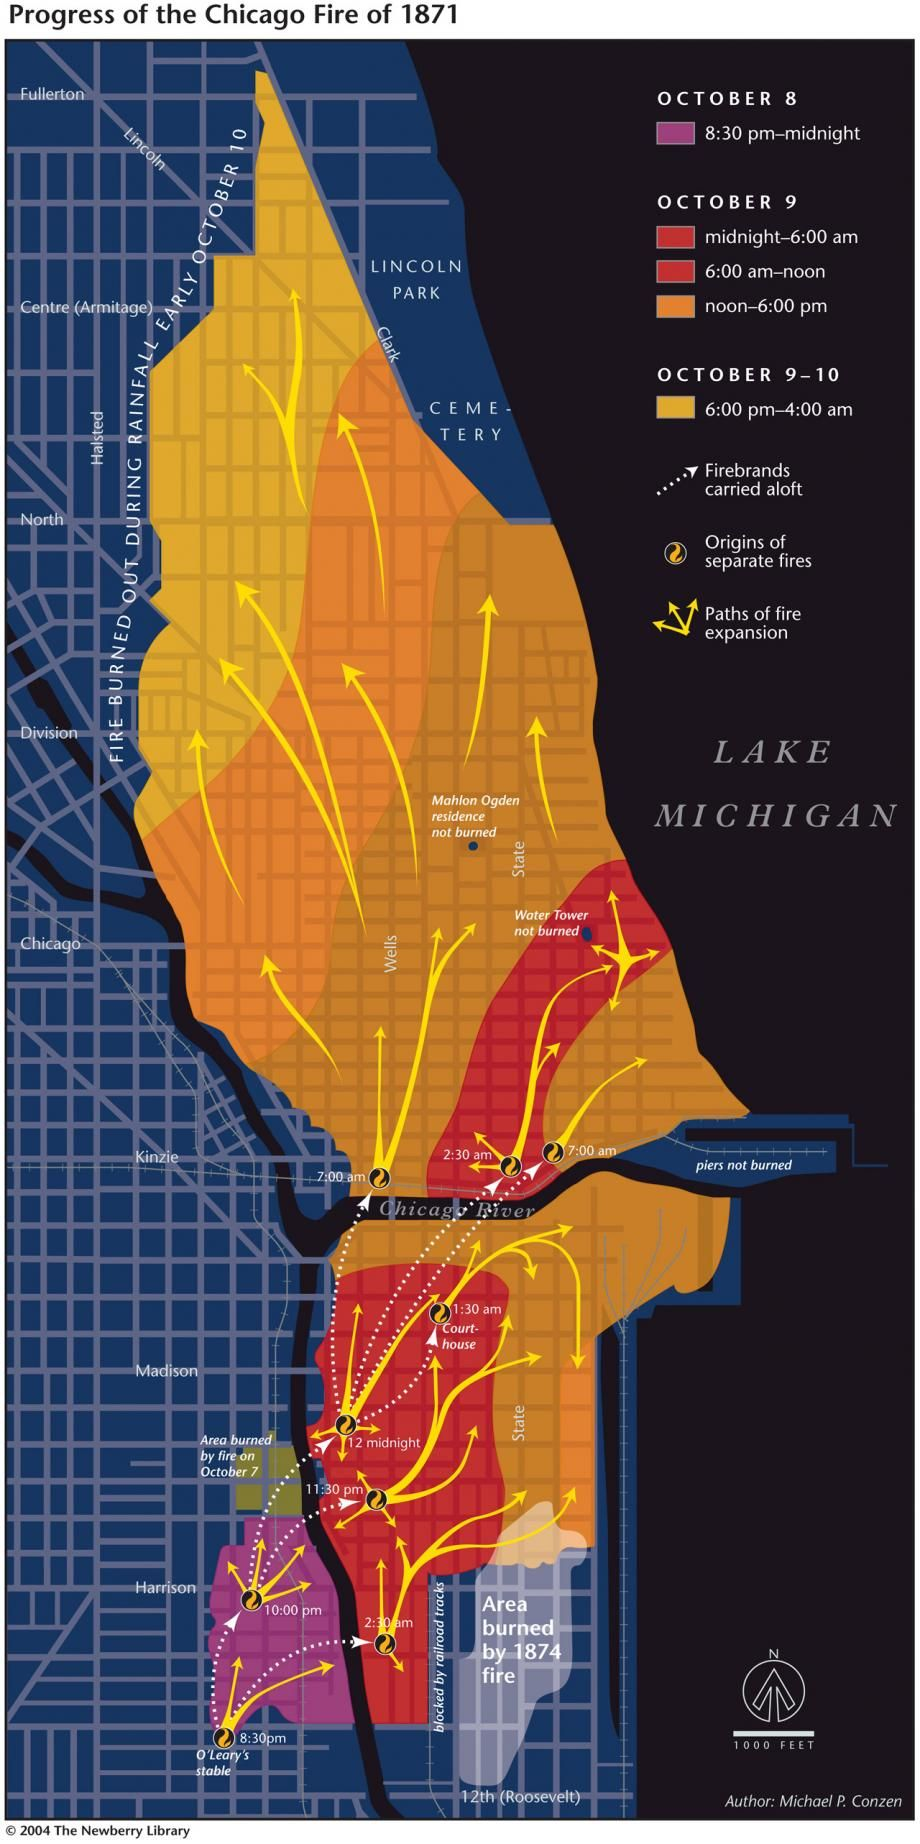 Progress Of The Chicago Fire Of 1871 Michael P Conzen With